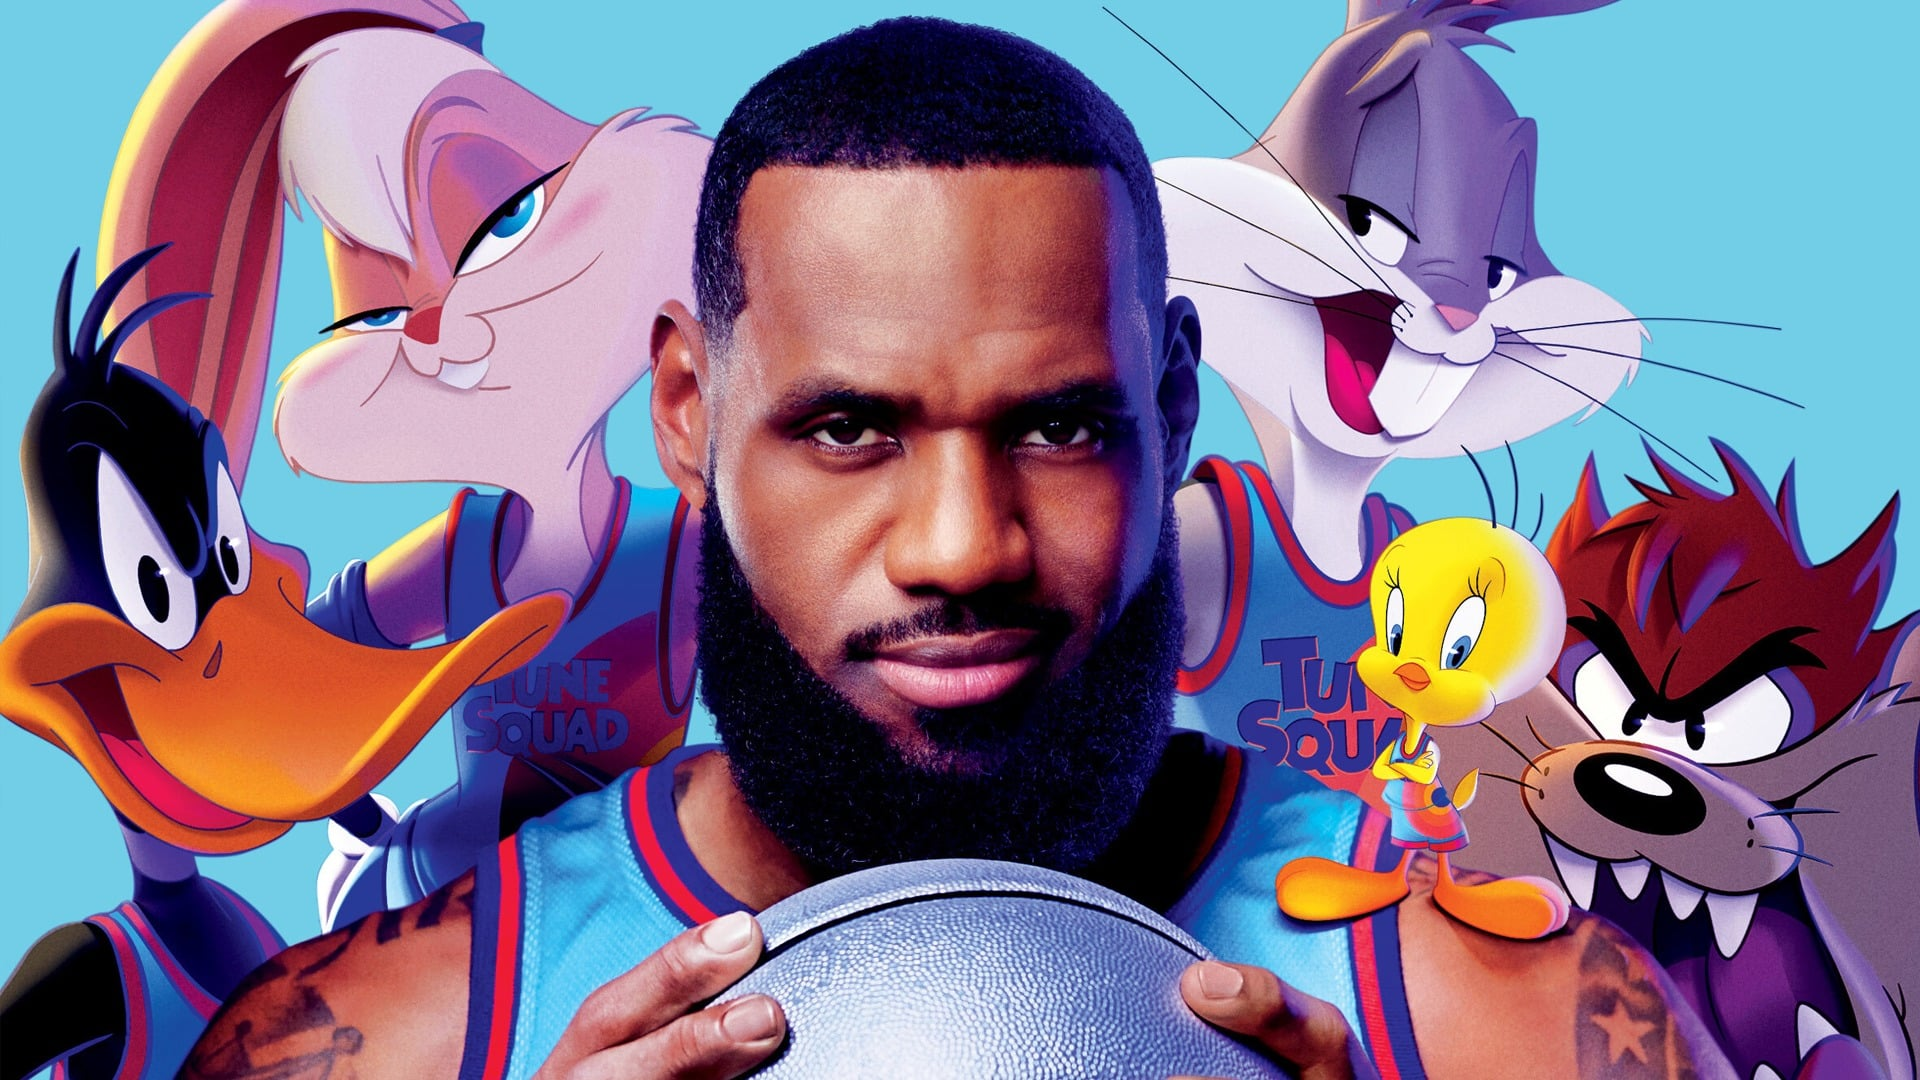 Space Jam: A New Legacy trailer